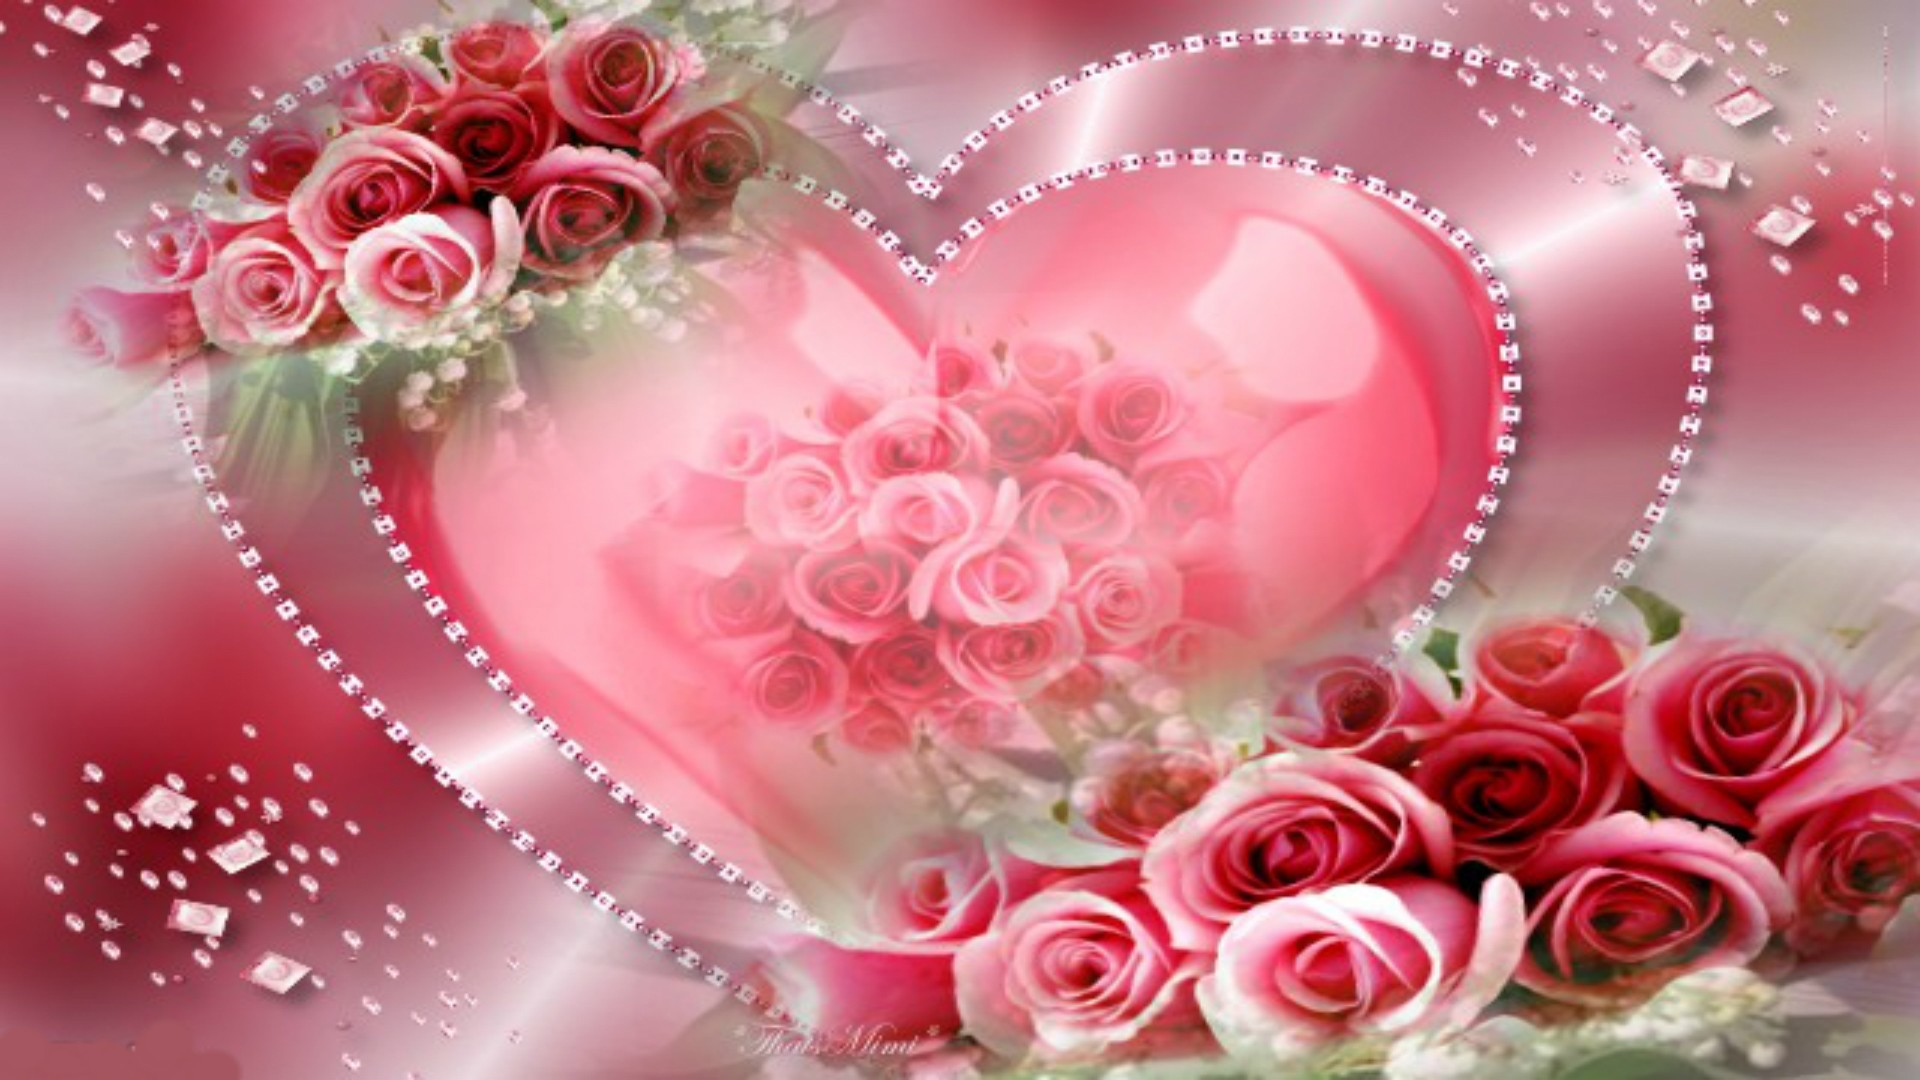 Hearts and flowers wallpaper 63 pictures - Pink roses and hearts wallpaper ...